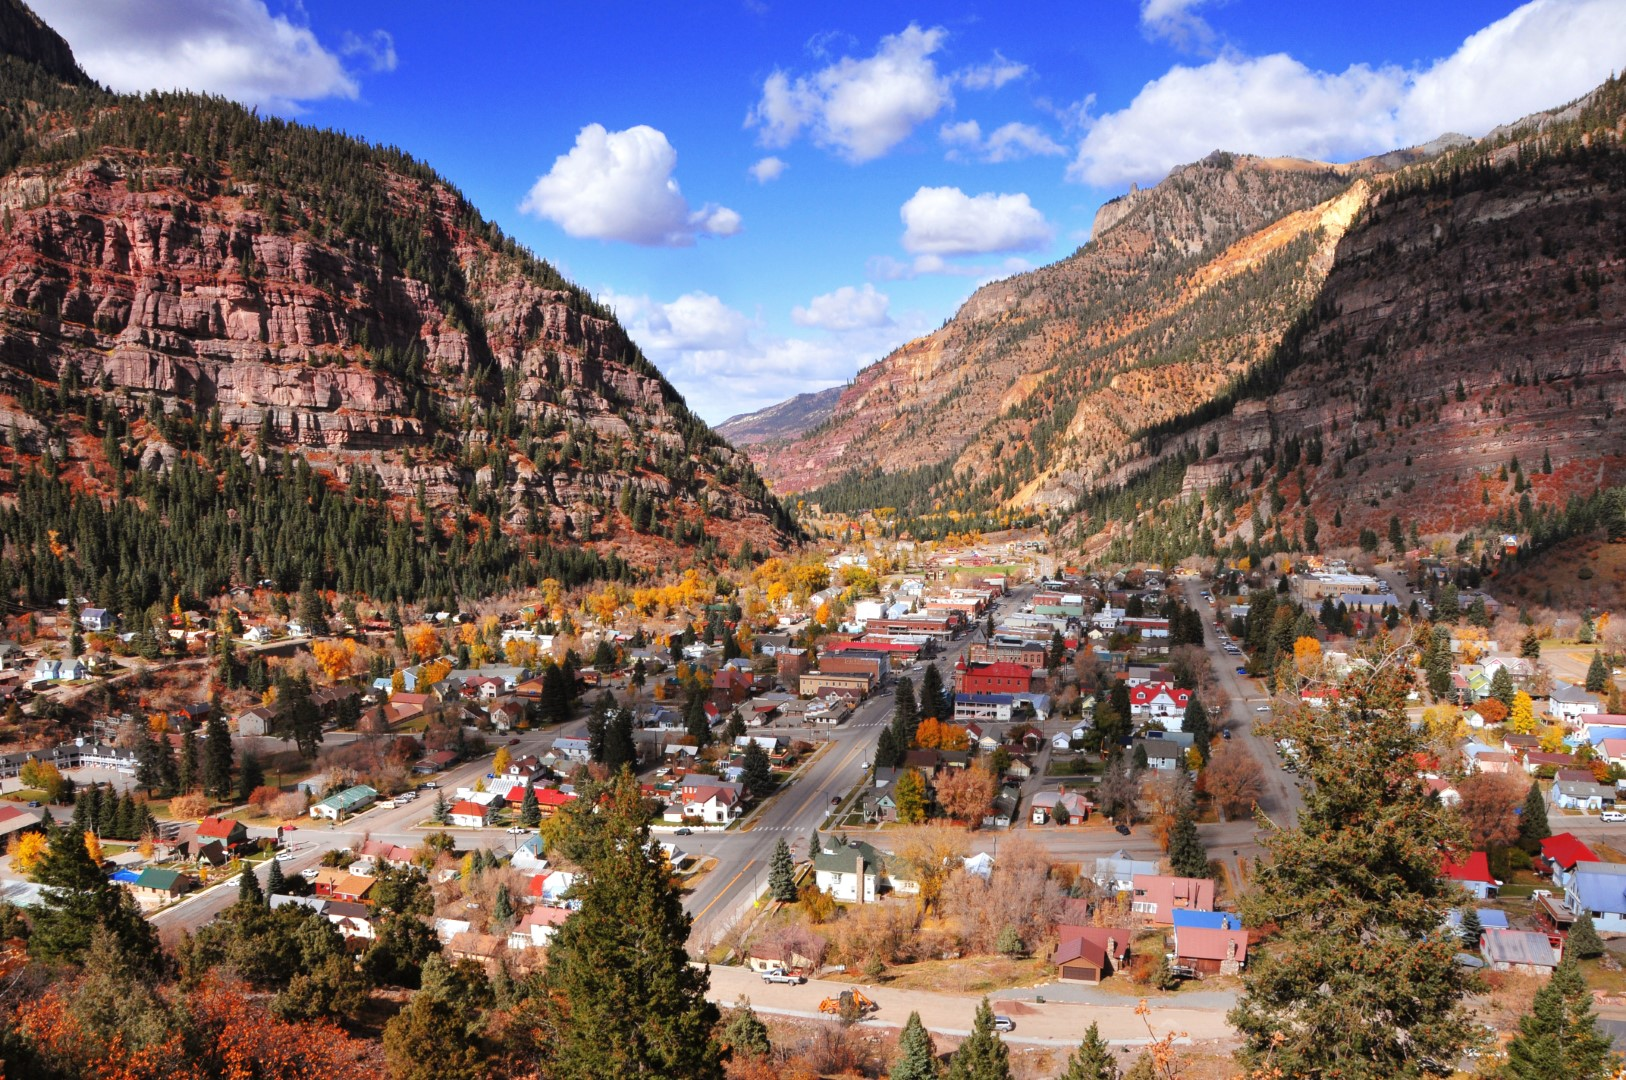 wp-content/uploads/itineraries/USA/CoMtn/ouray-town.jpg